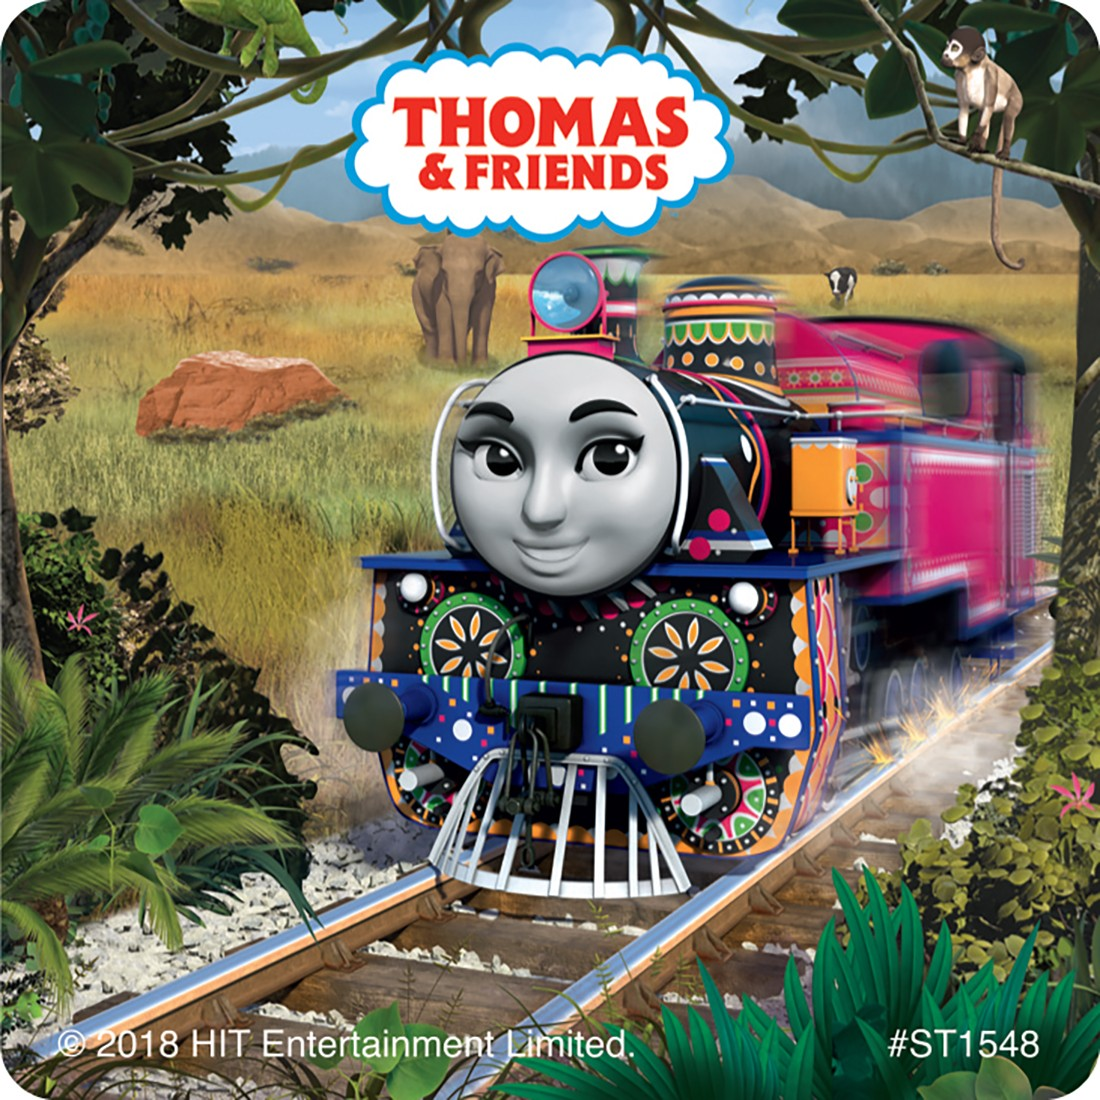 Thomas' Big World Adventure Movie Stickers [image]